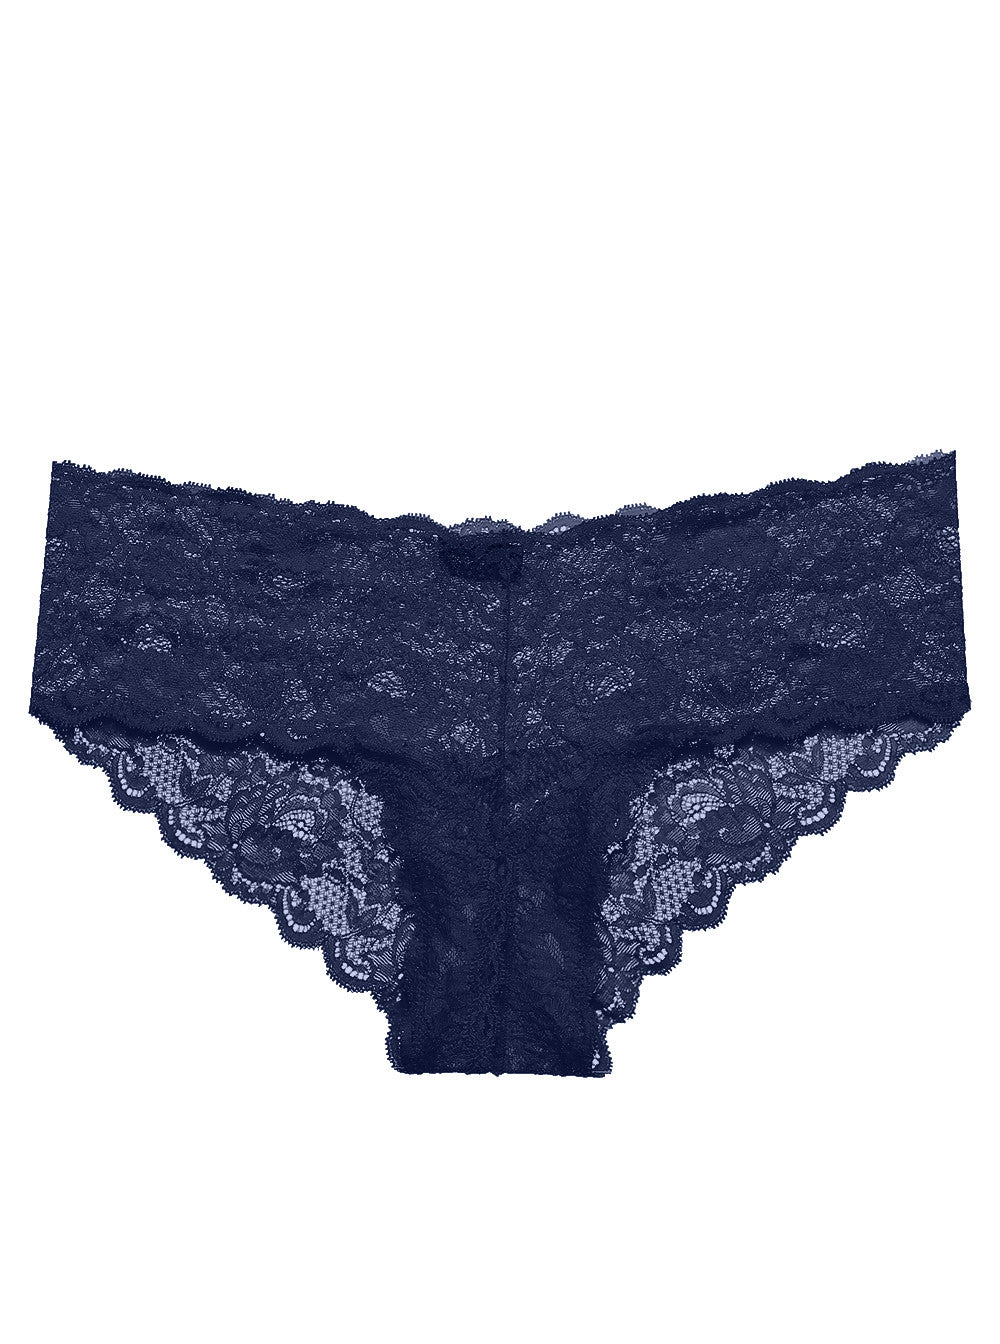 Navy Never Say Never Hottie Lace Hotpant